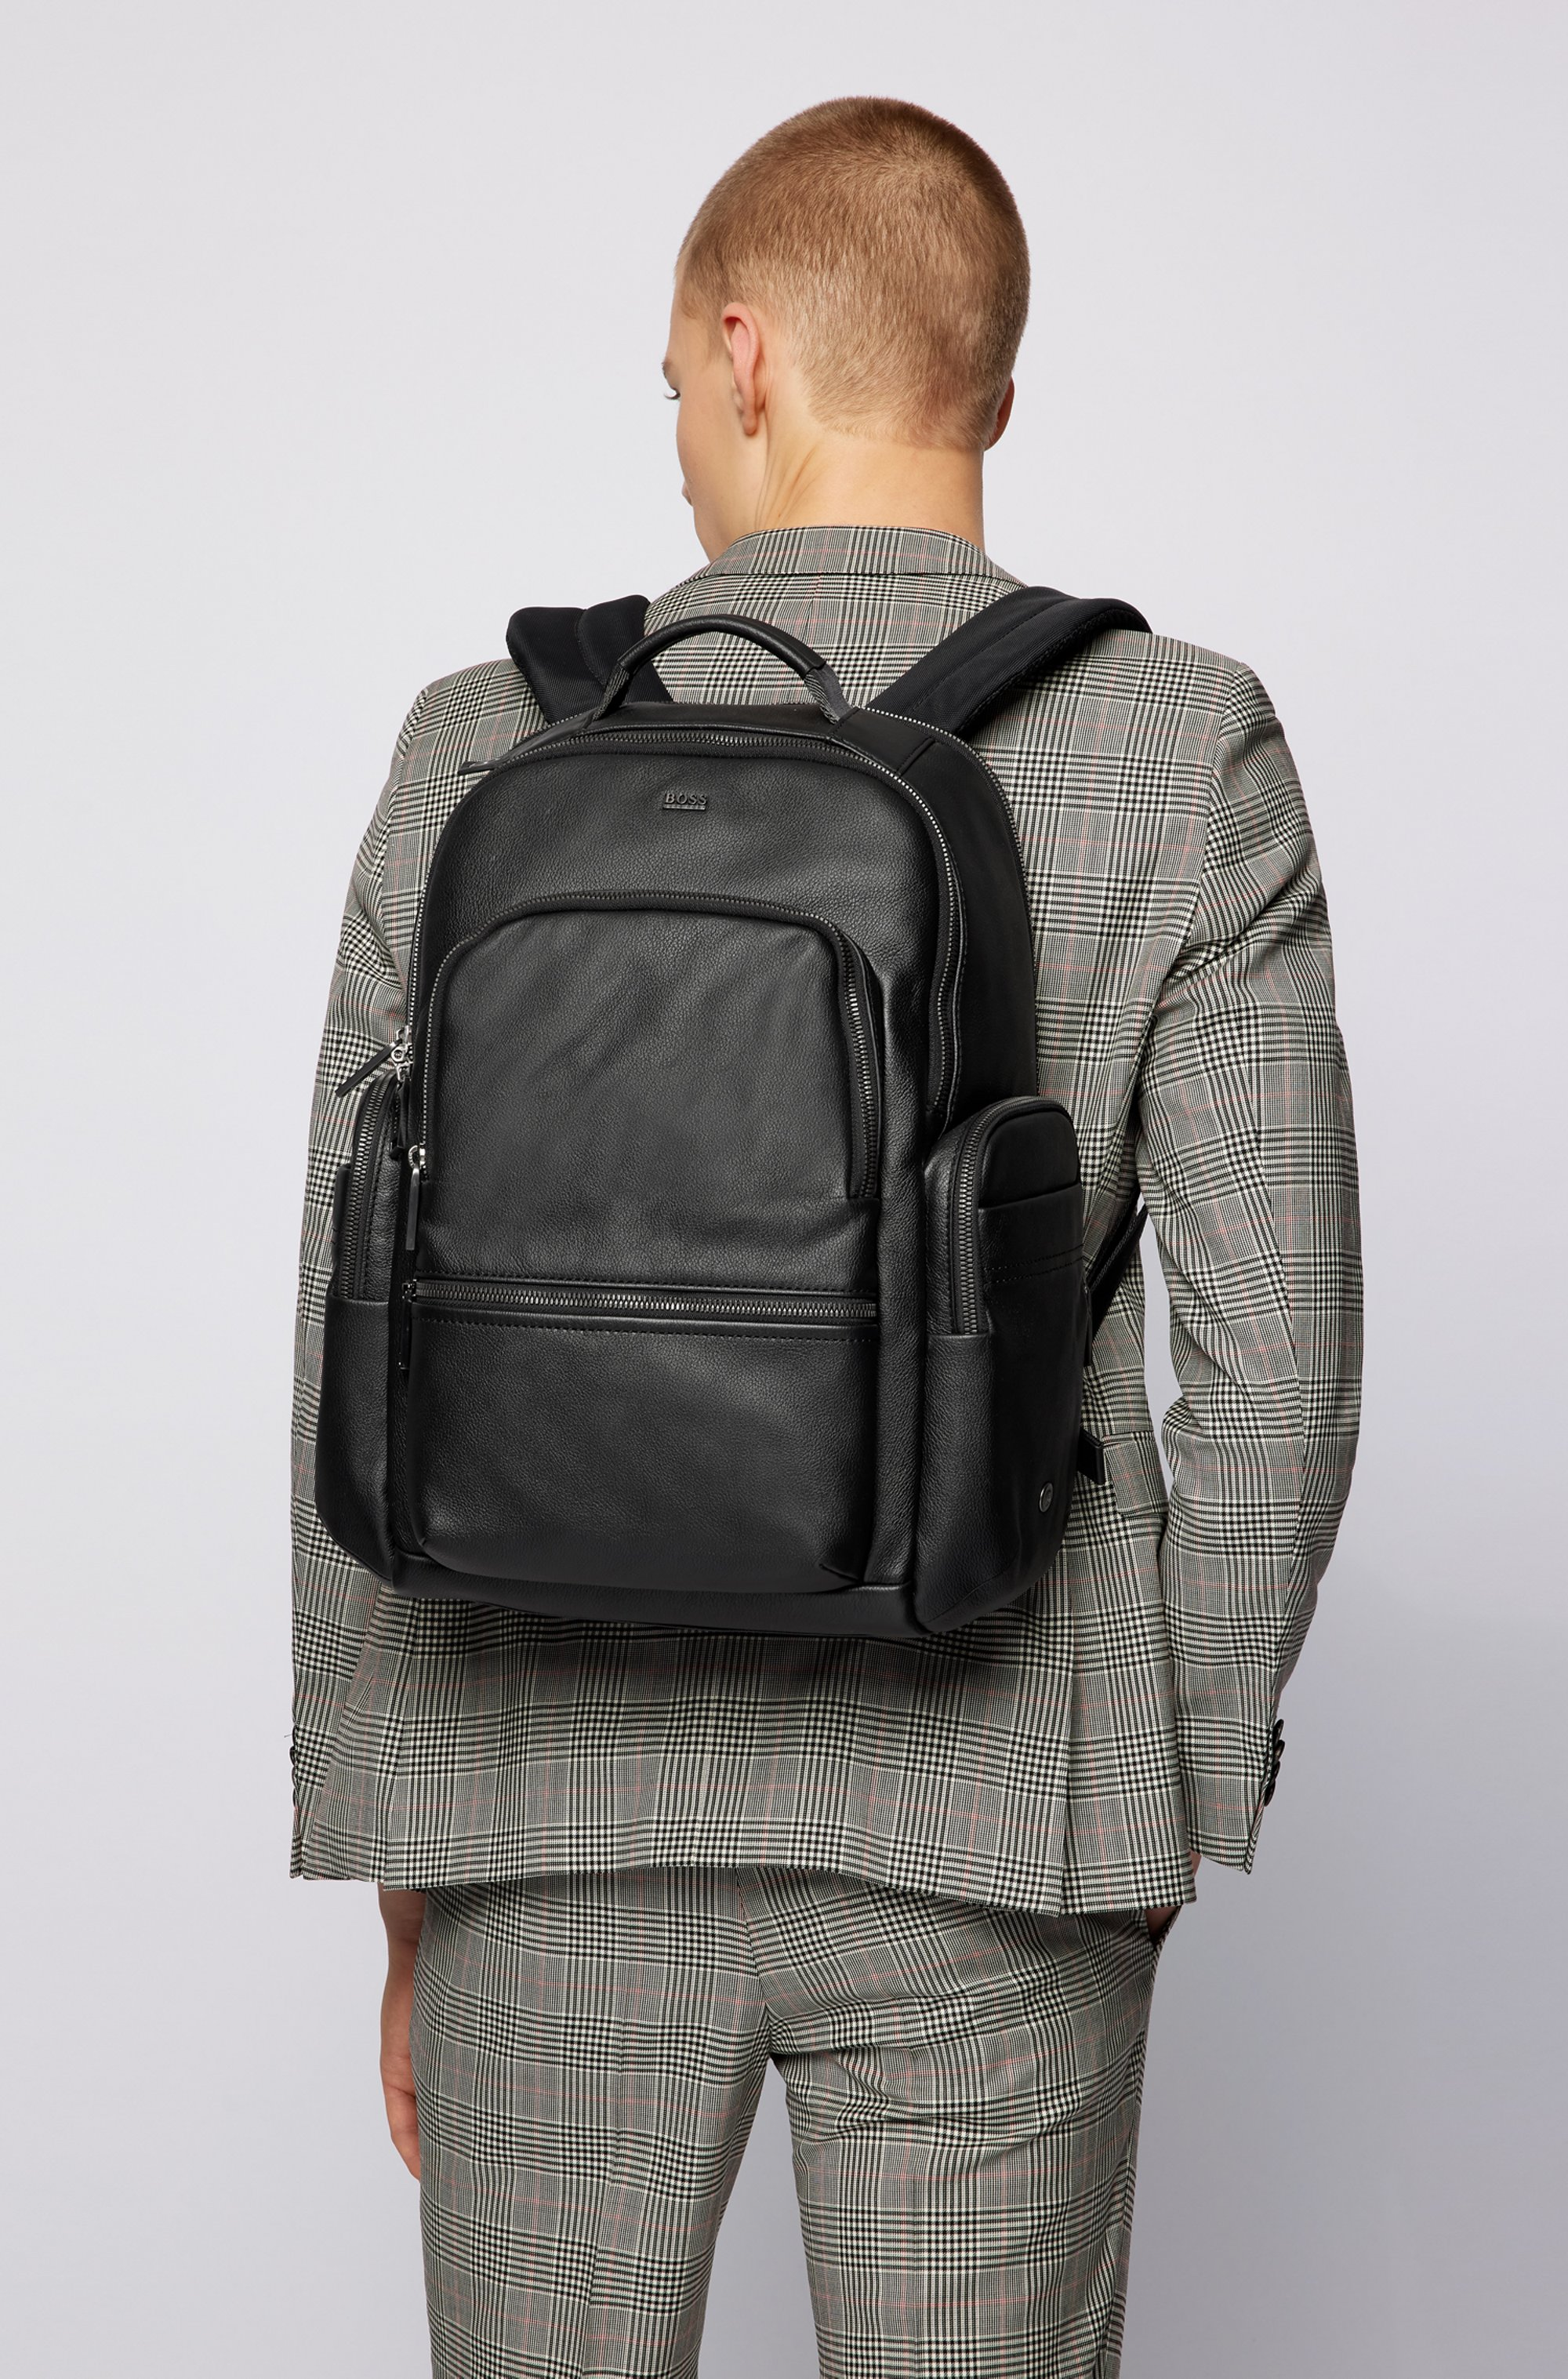 Smooth-leather backpack with multiple pockets